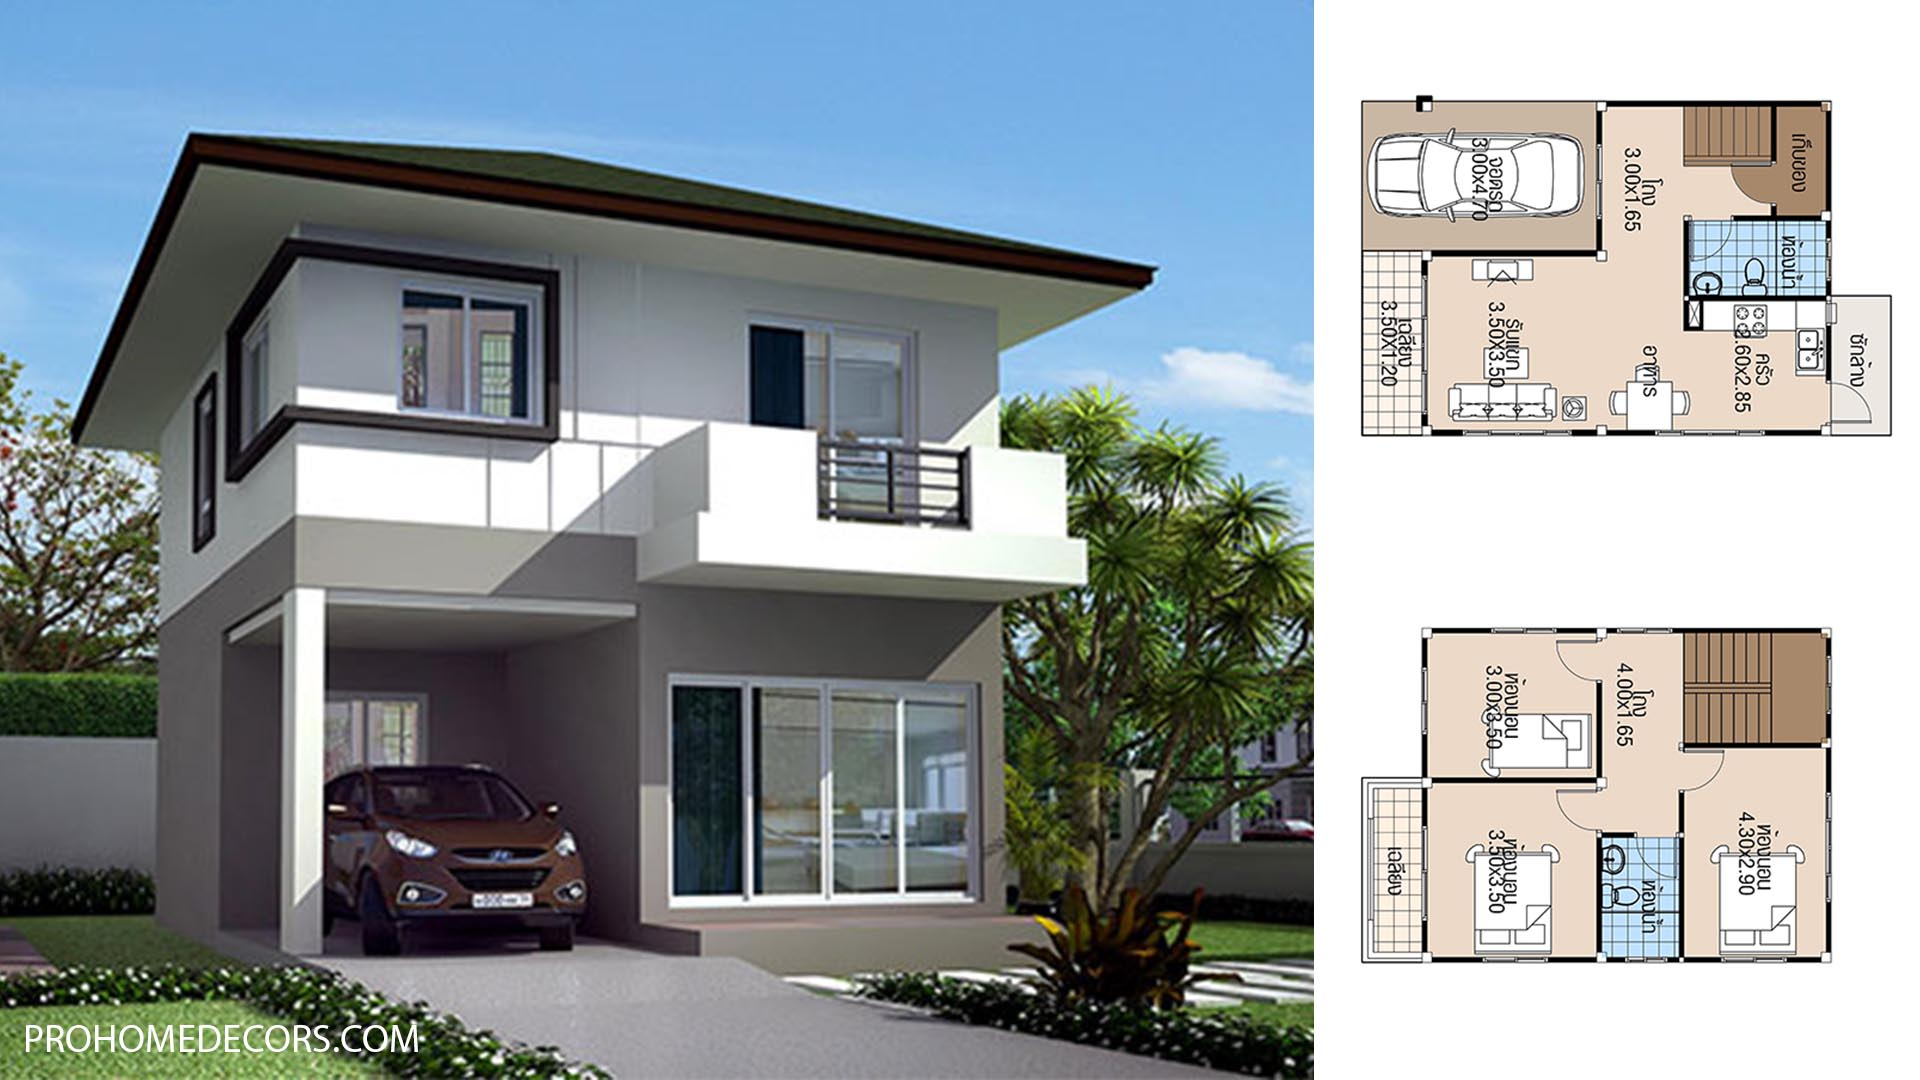 House Plans 6.5×8 with 3 Beds